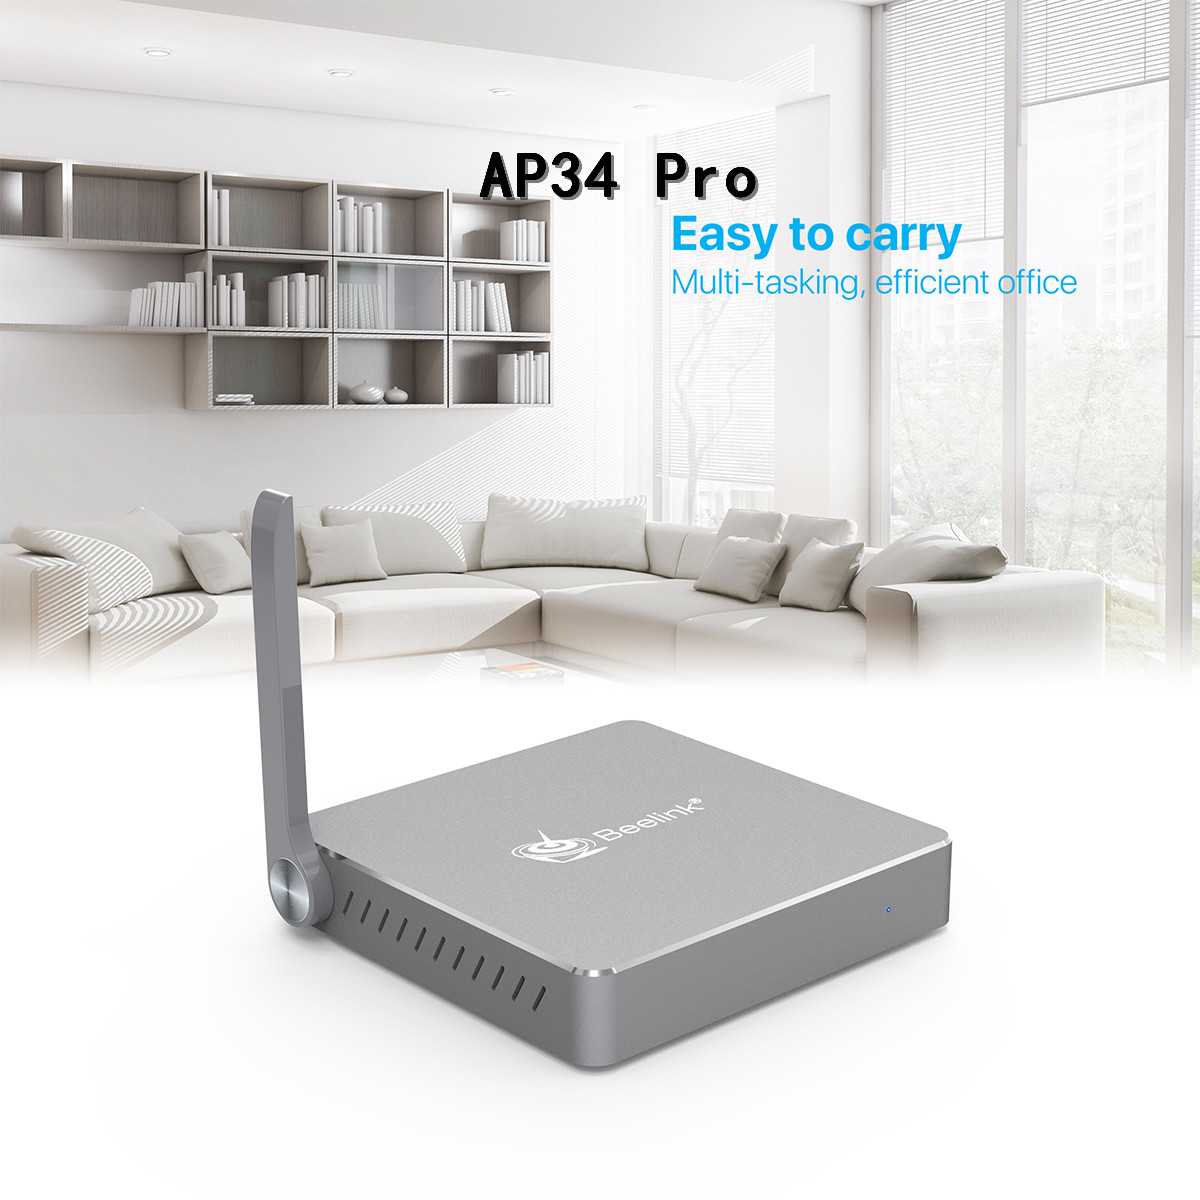 Smart Beelink AP34 Pro Gemini X55 X45 S2 Android TV Box Mini PC Windows 10 Bluetooth Set Top Boxes Media Player Vs Gt1 Ultimate beelink mini pc bluetooth 4 0 usb 3 0 2 4 5 8g 4gb 320gb x7 z8700 wifi 4k 1000m lan windows 10 tv box beelink bt7 media player